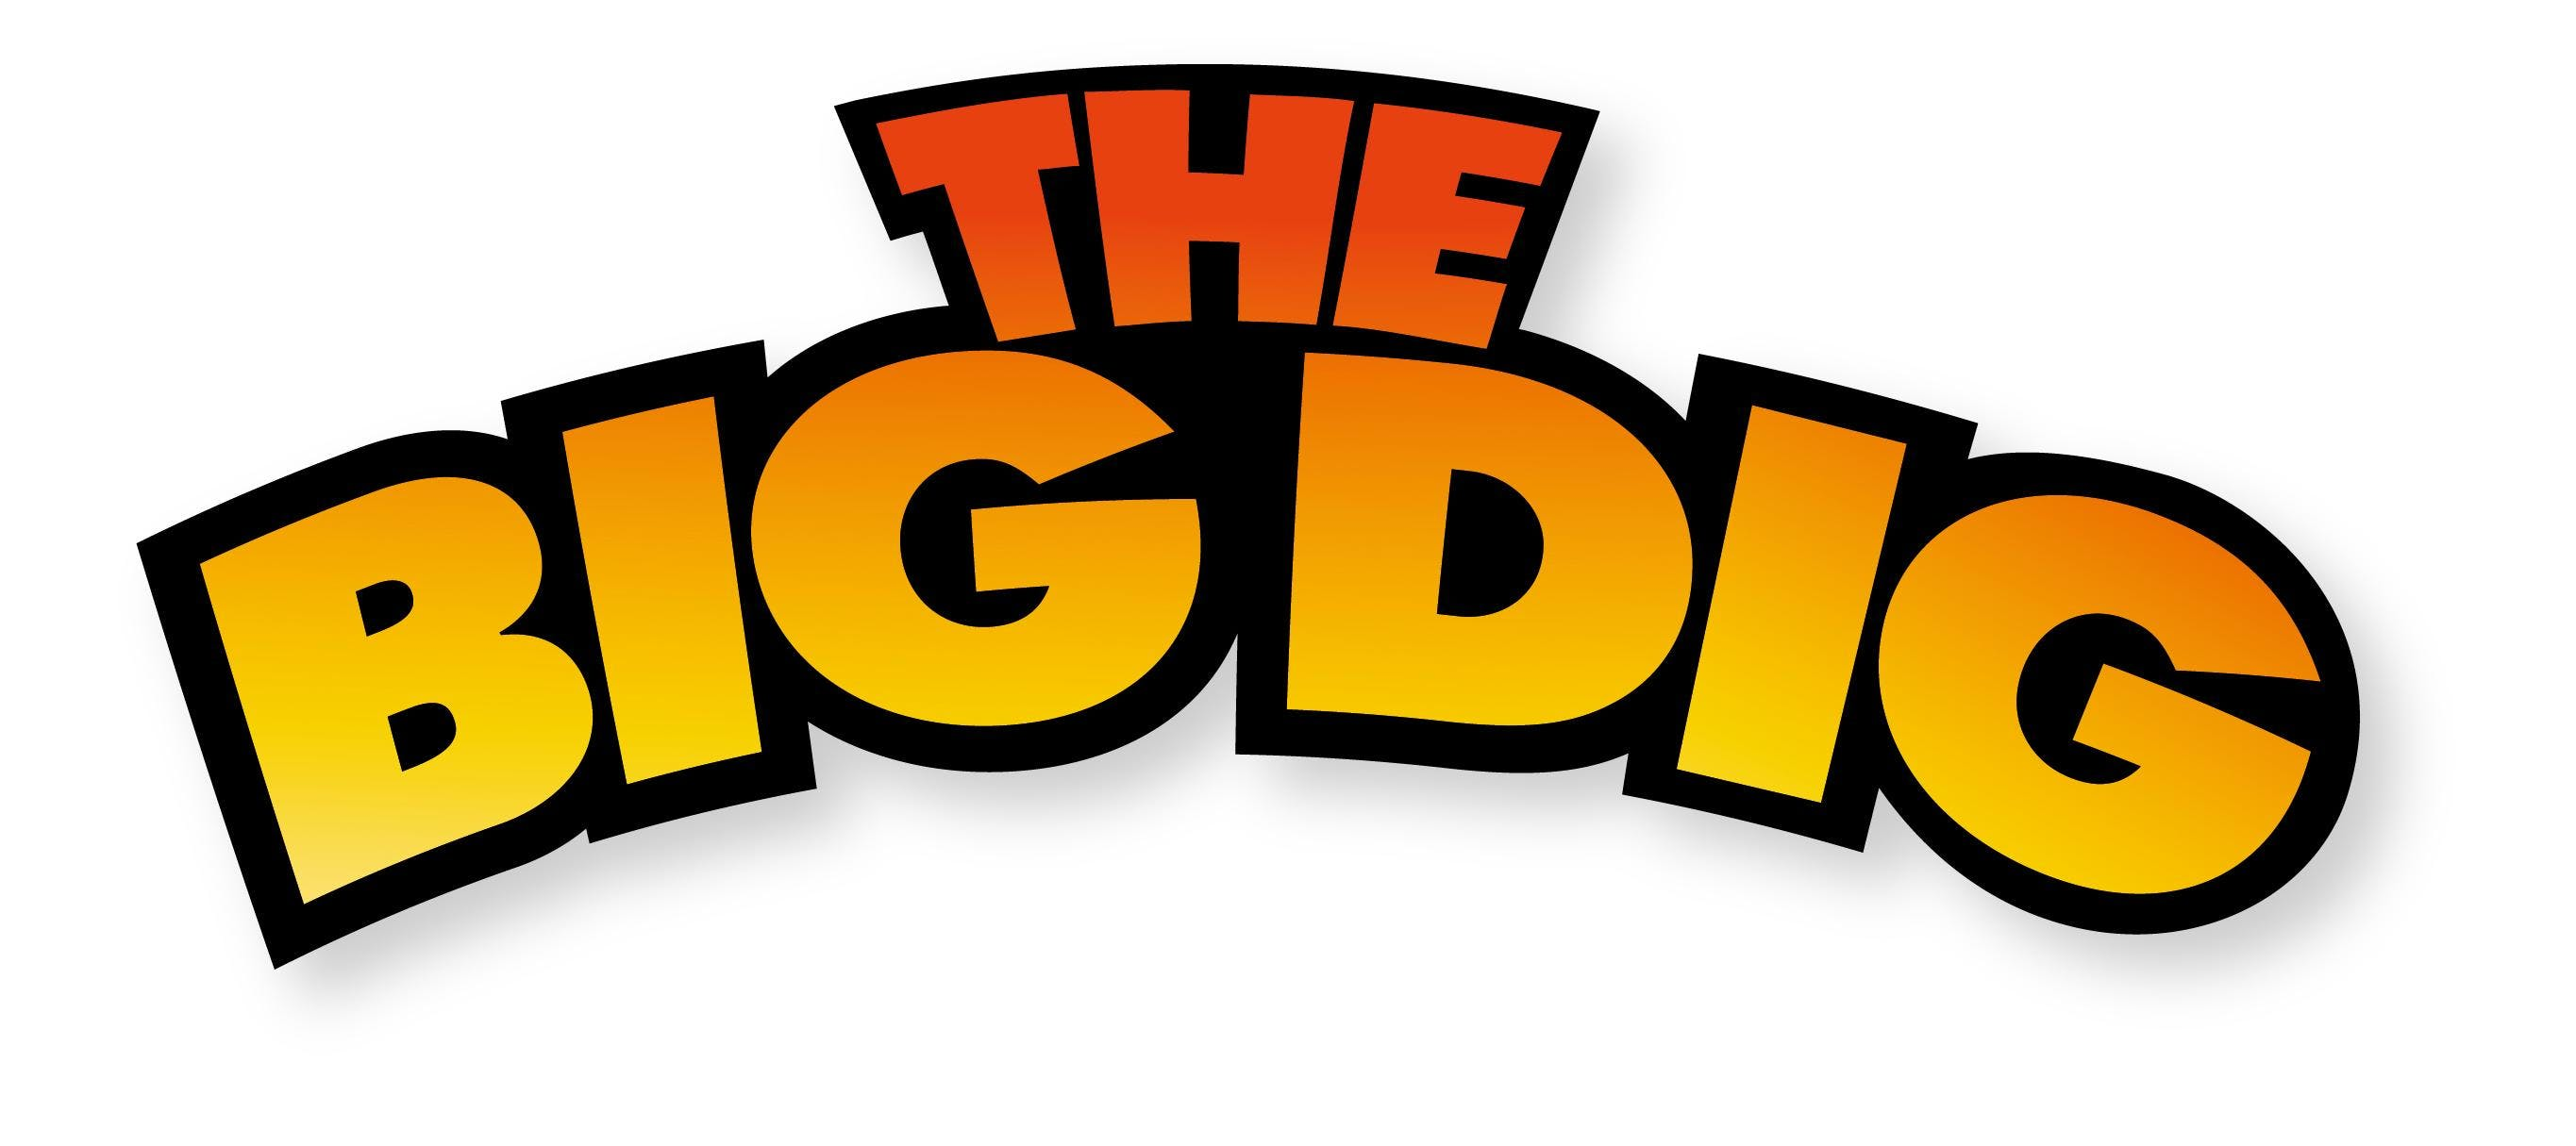 The Big Dig - McCormack Square, Athlone, Co. Westmeath - 25th August (Heritage Week 2018)